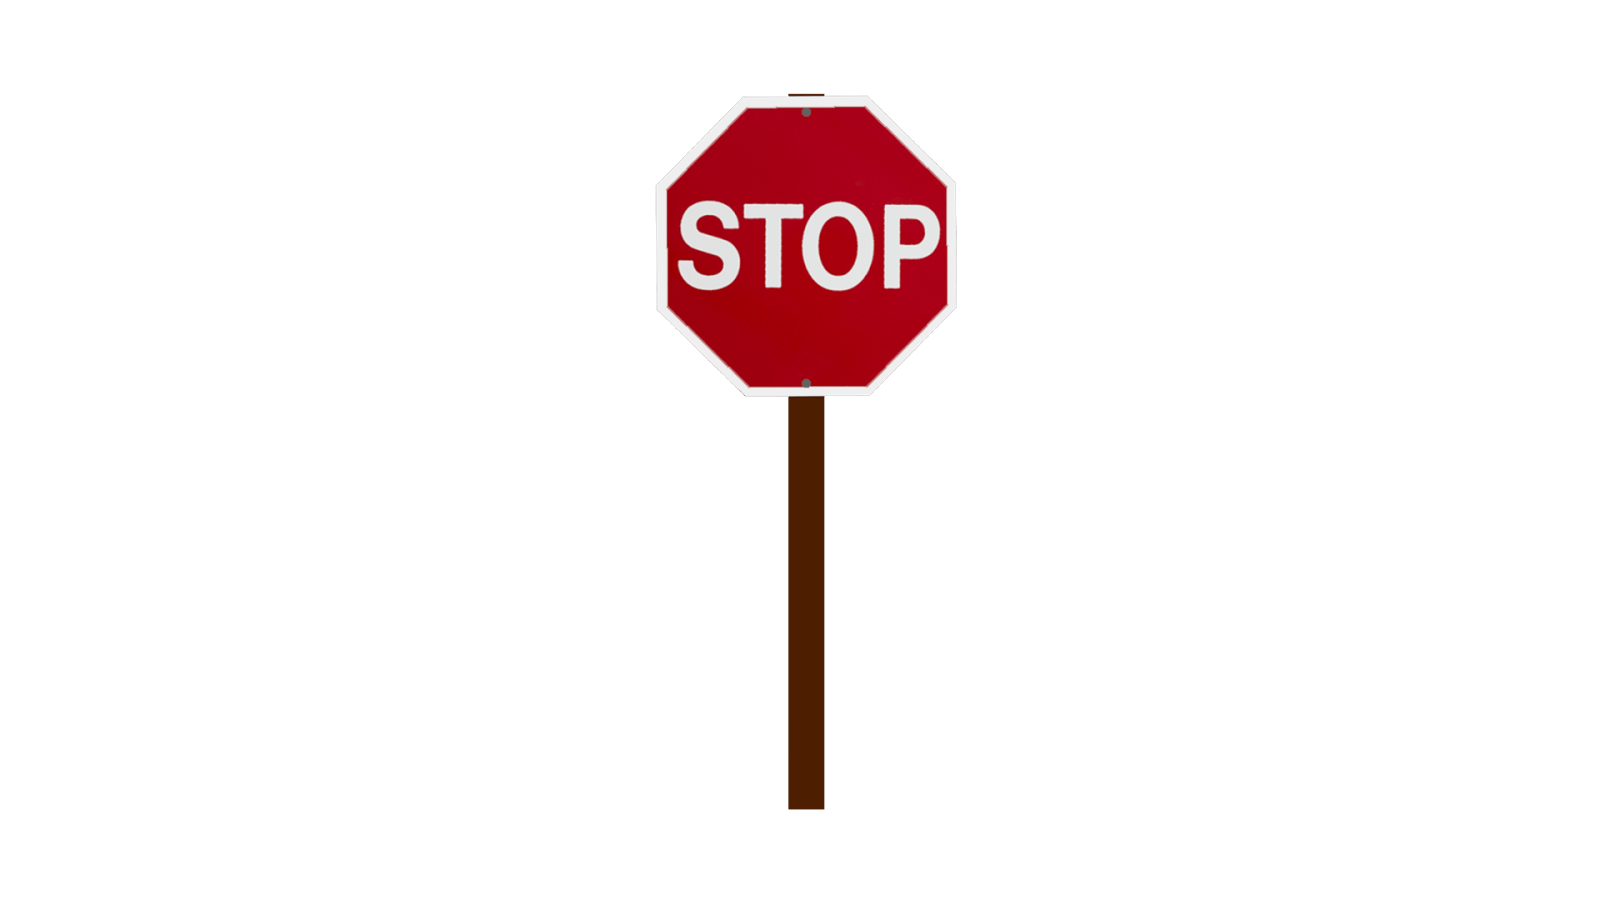 Road Sign Board Png Street Signs Png Hd Transparent Street Signs Hd Png Images